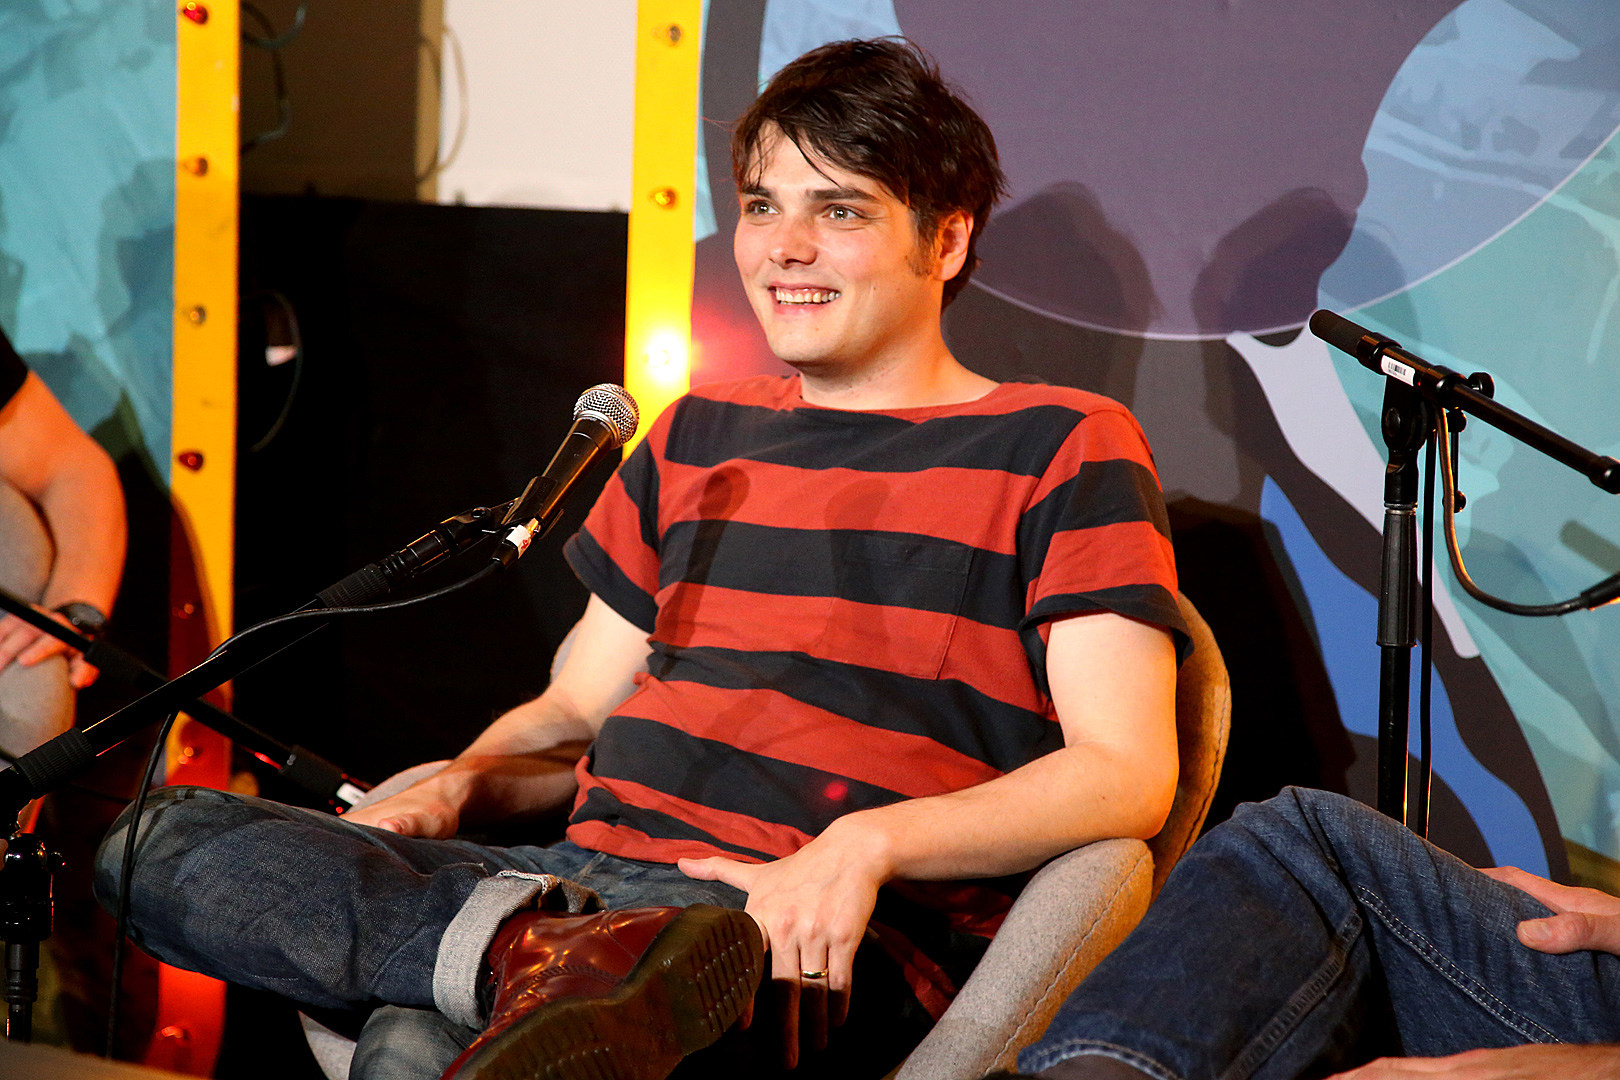 Gerard Way I Wouldnt Count Out A My Chemical Romance Reunion